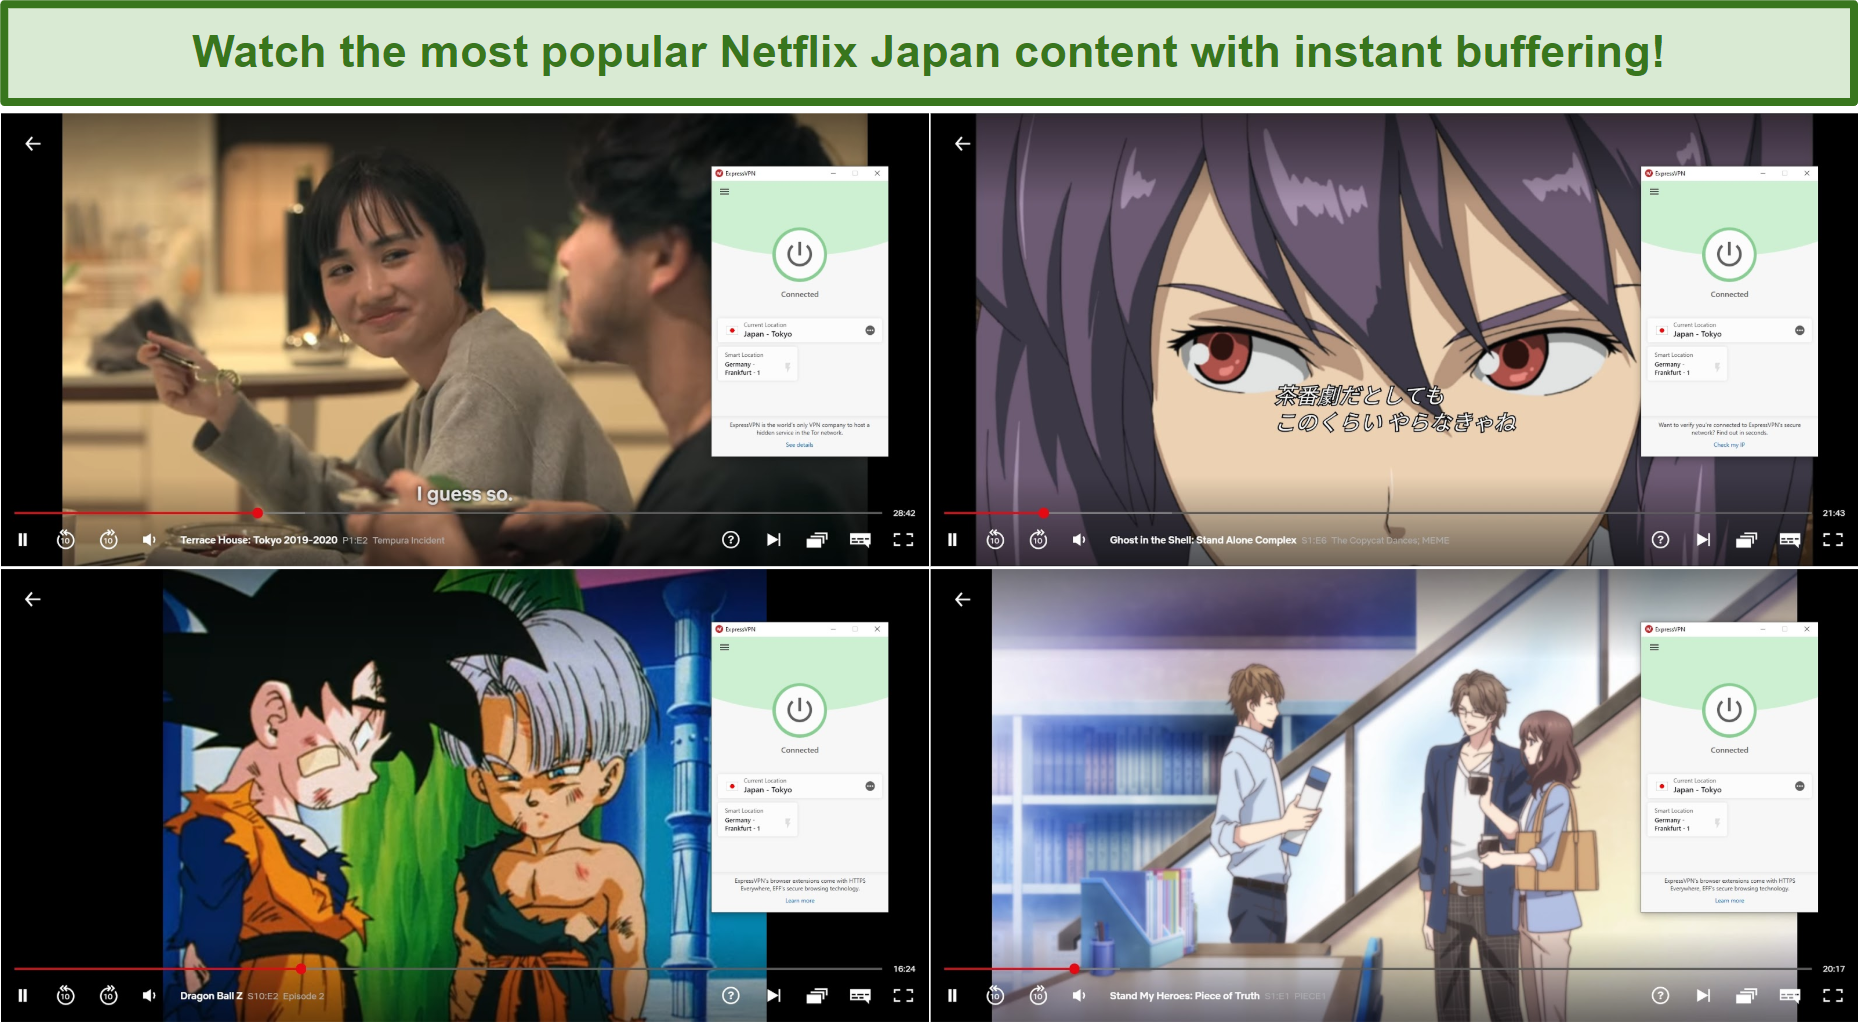 Screenshot of ExpressVPN streaming Terrace House: Tokyo, Ghost in the Shell: Stand Alone Complex, Dragon Ball Z, and Stand My Heroes: Piece of Truth from Netflix Japan